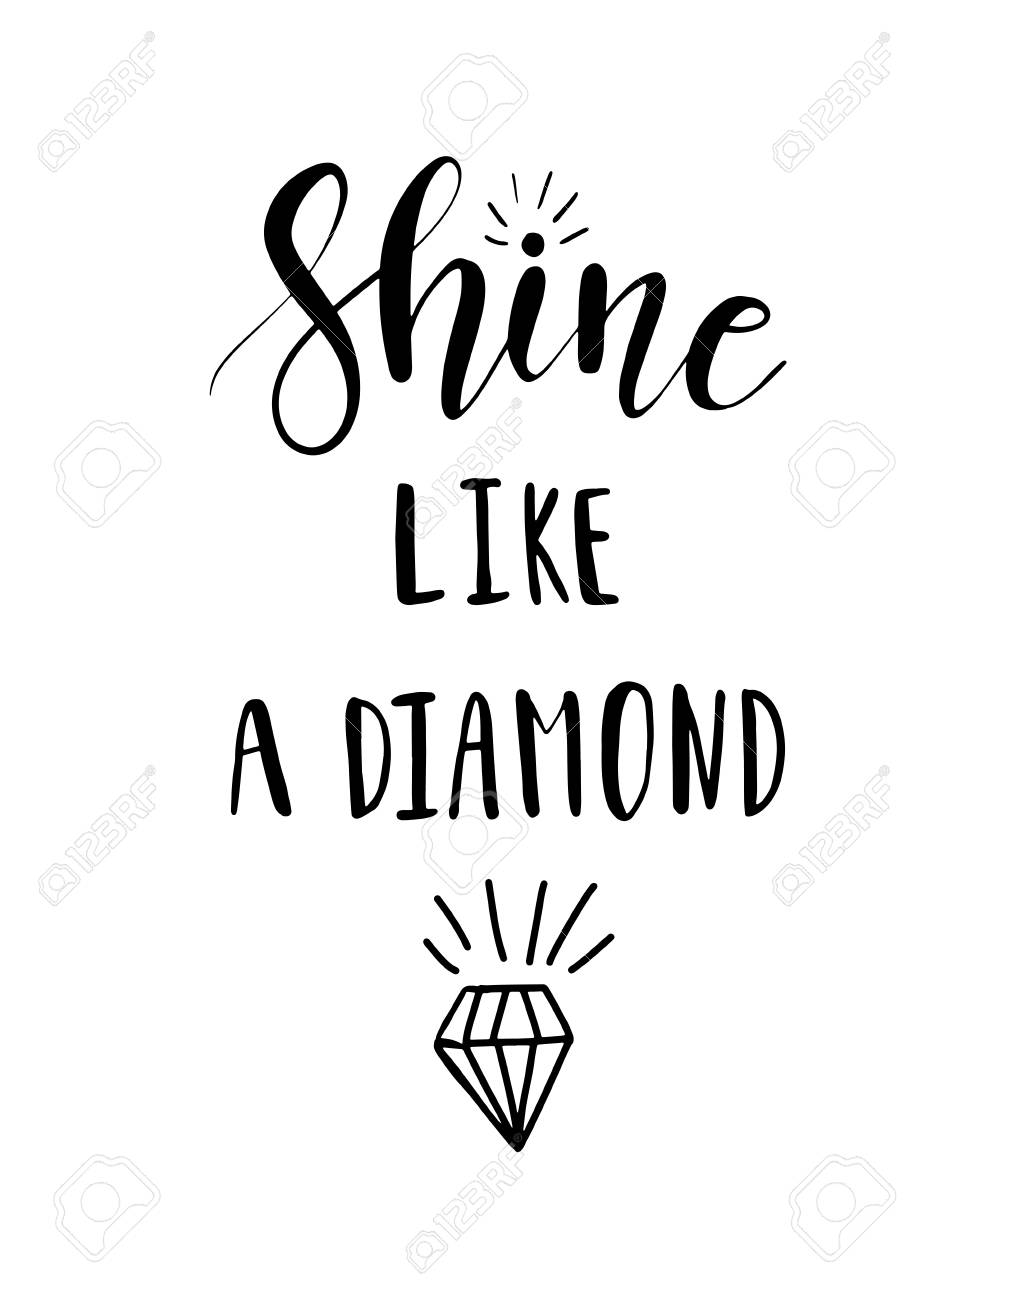 different john diamonds products poster quote minimalist design diamond webster